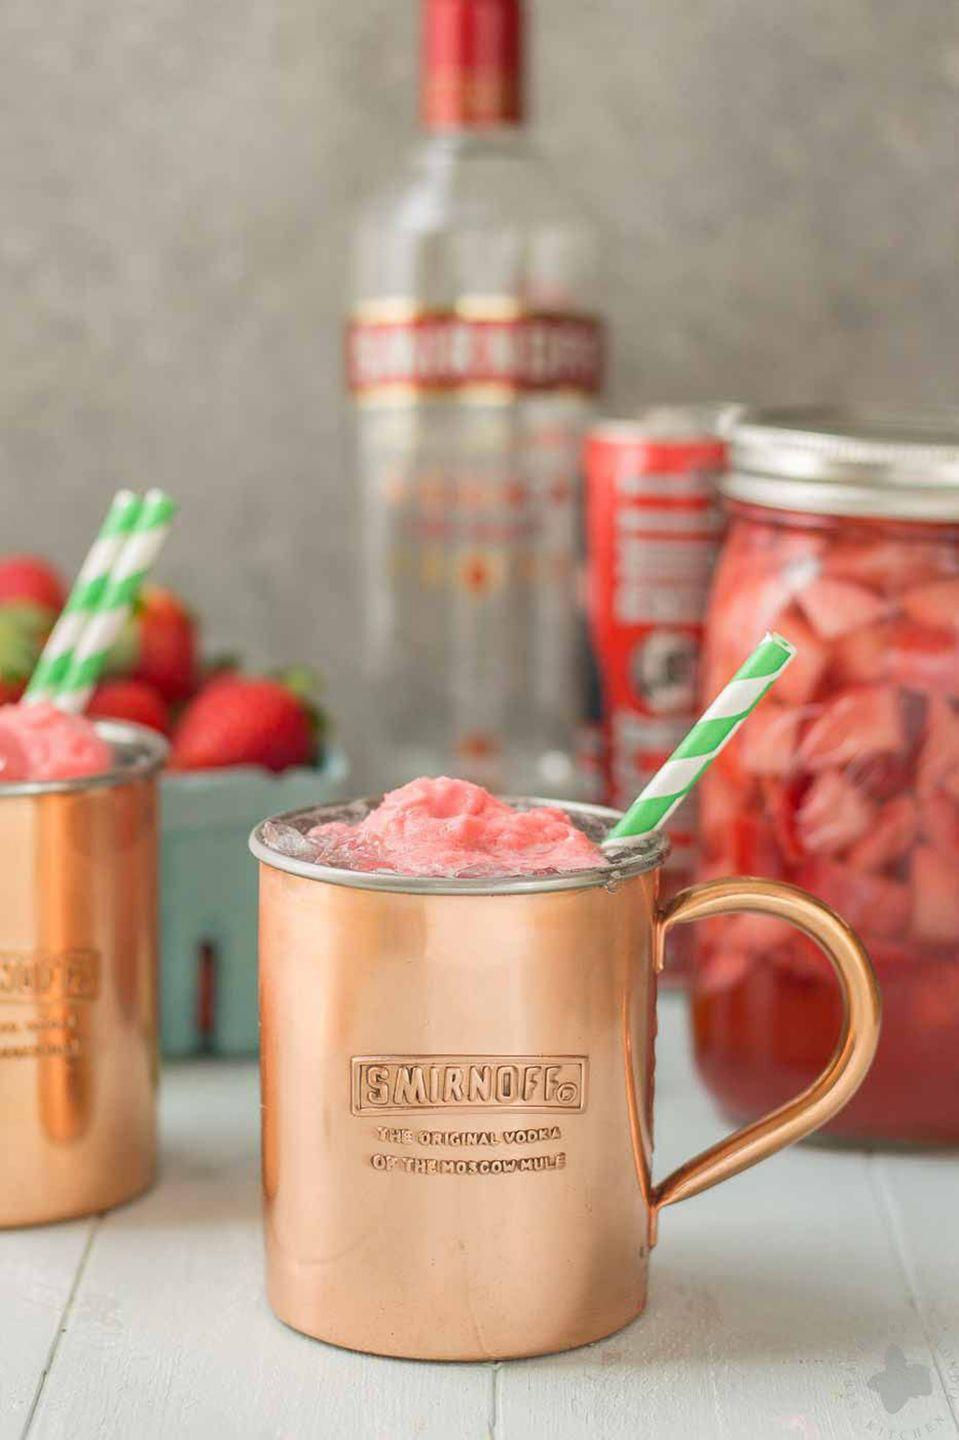 "<p>I<strong>ngredients</strong>:<br></p><p>1.5 oz. Smirnoff Vodka</p><p>1 Lime</p><p>4 oz. Ginger Beer</p><p>Ice</p><p>Scoop of Strawberry Sorbet</p><p><strong>Directions</strong>: </p><p>Into the bottom of a copper mug, add vodka, lime juice, and ice. Top with ginger beer and a scoop of sorbet.</p><p><em>Created by Megan Marlowe of <a href=""http://www.strawberryblondiekitchen.com/"" rel=""nofollow noopener"" target=""_blank"" data-ylk=""slk:Strawberry Blondie Kitchen"" class=""link rapid-noclick-resp"">Strawberry Blondie Kitchen</a></em></p>"